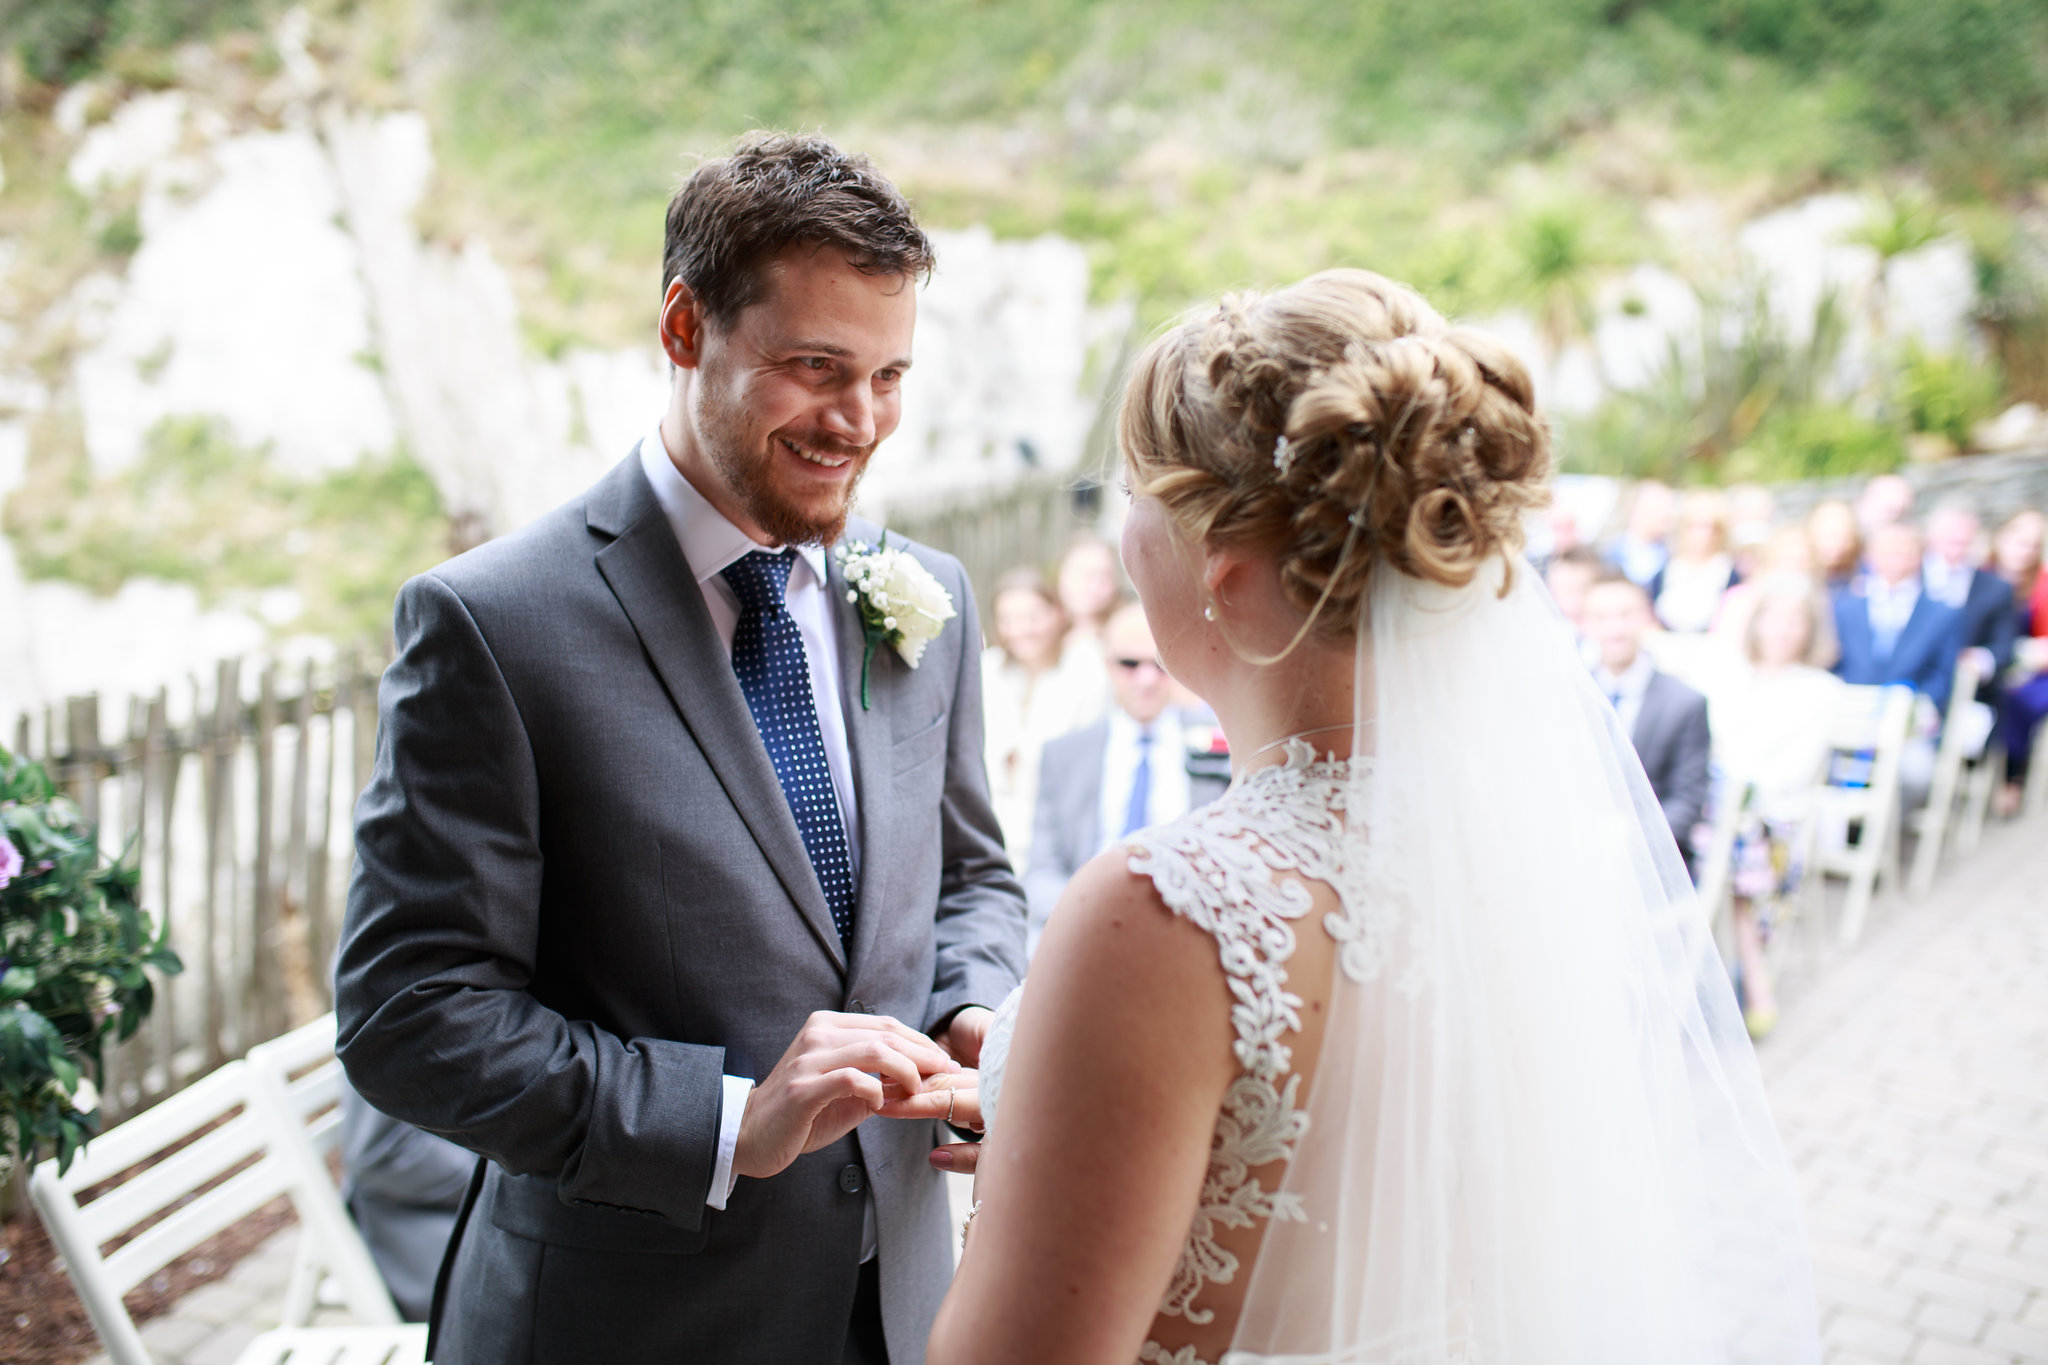 Wedding Hair Terri Pinned to Perfection Wedding Hairdressing Bridal Hair Ilfracombe North Devon Tunnels Beaches Watersmeet Hotel Sandy Cove Ash Burton Saunton Sands Ocean Kave Woolacombe Bay Westcott Barton Barnstaple Hotel Sam Box Photography